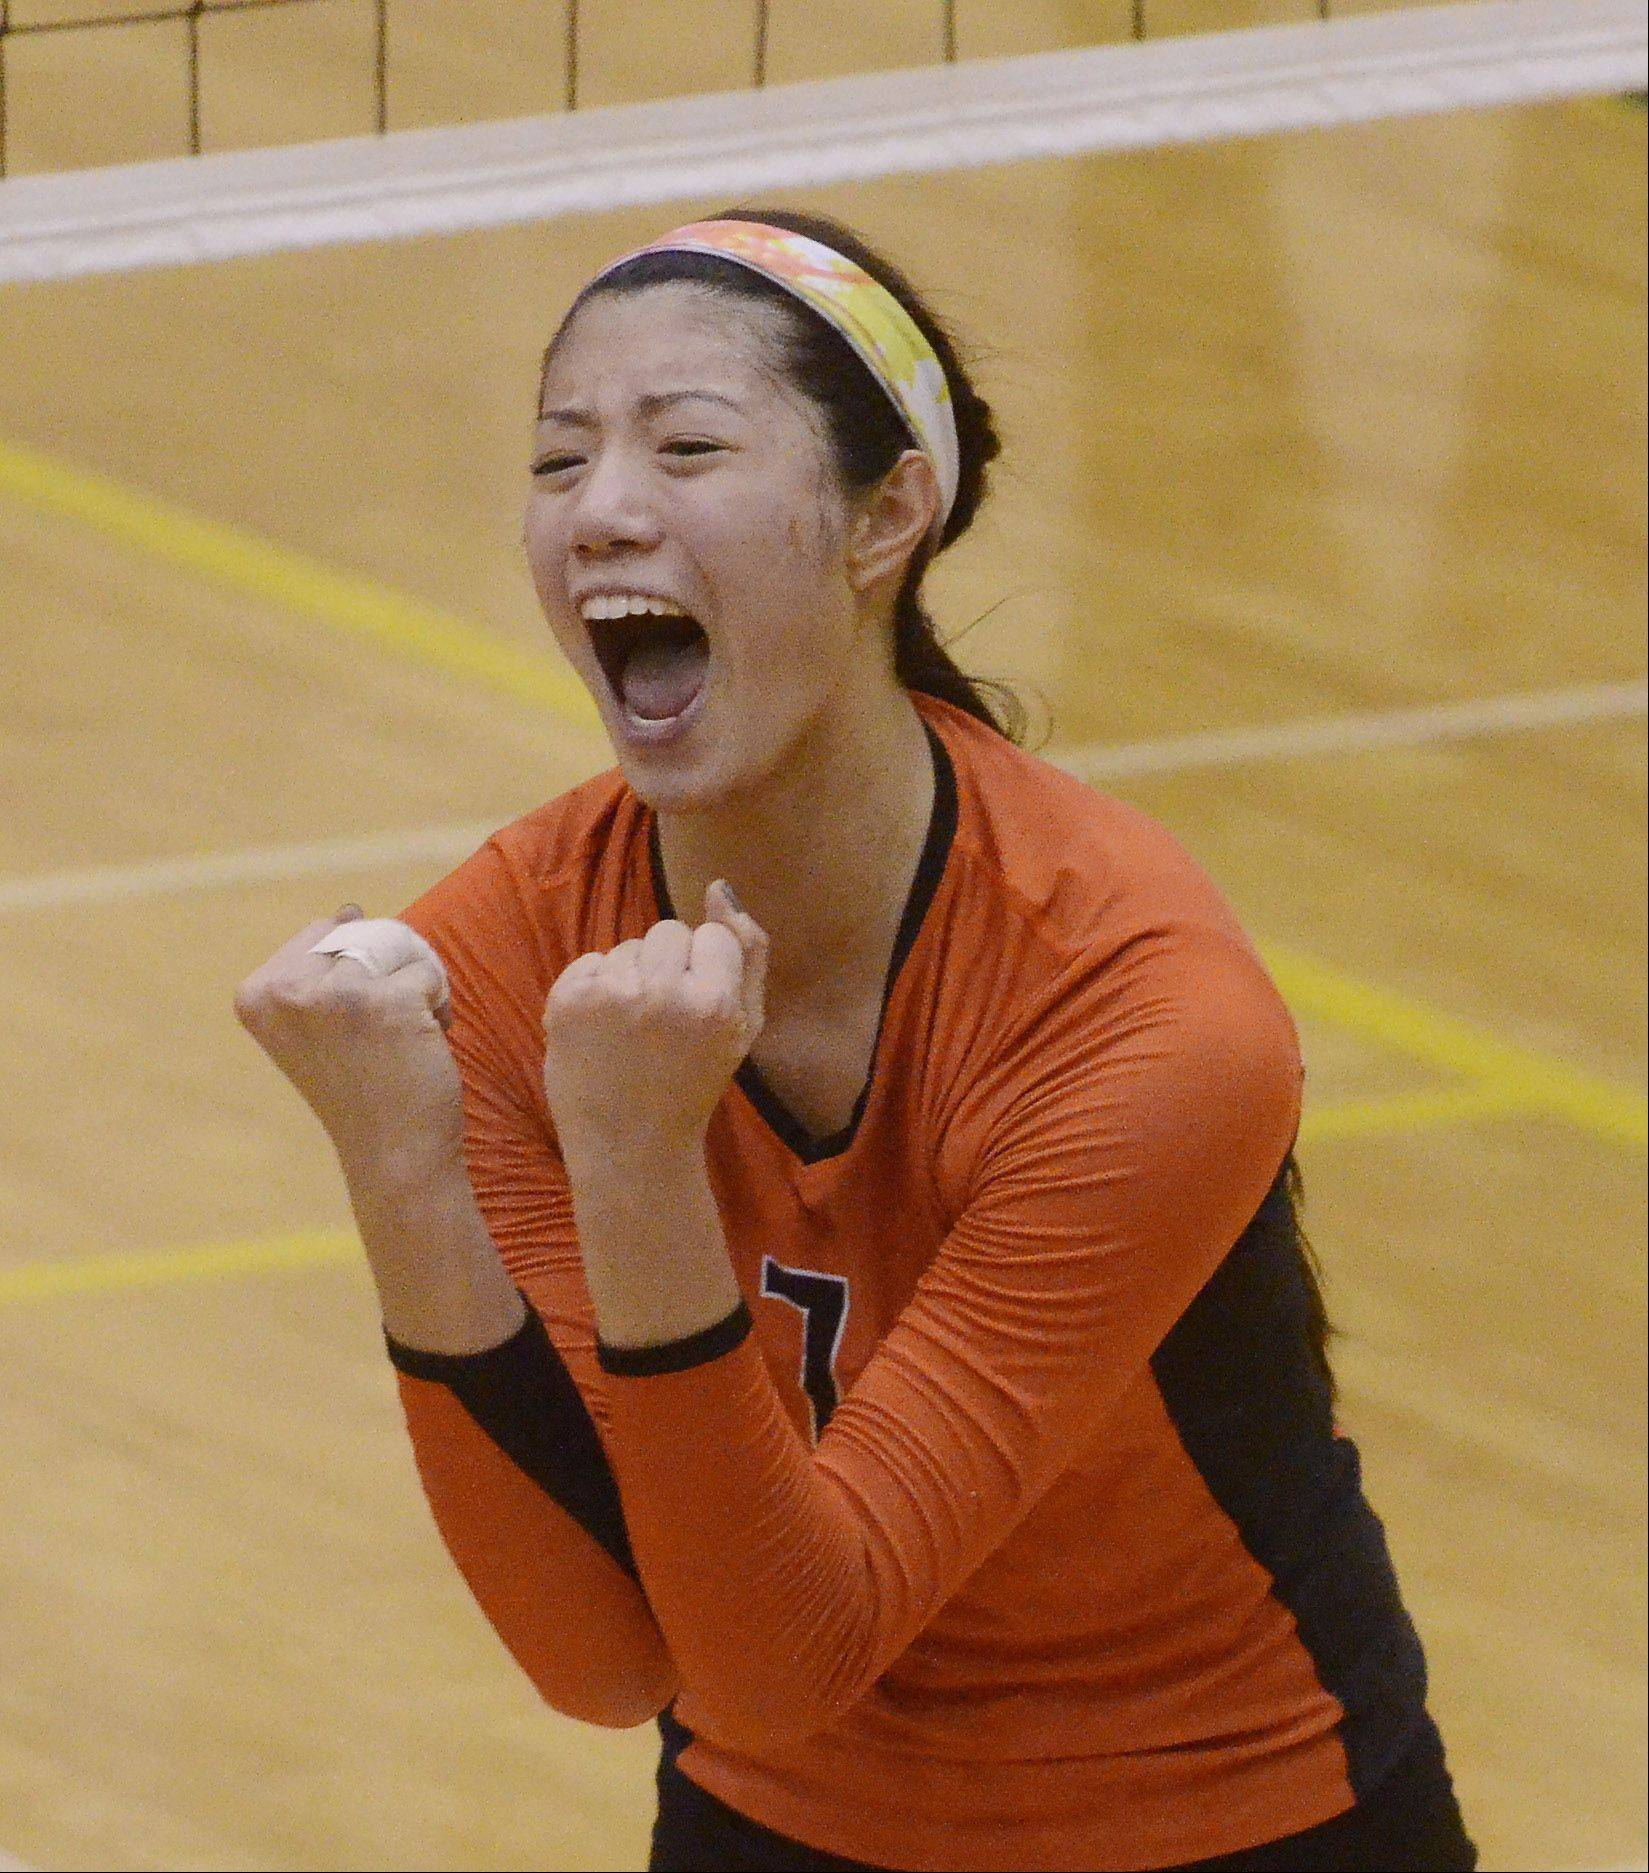 Libertyville's Cindy Zhou celebrates as her team nears victory against Hersey during Tuesday's sectional semifinal at Fremd High School in Palatine.